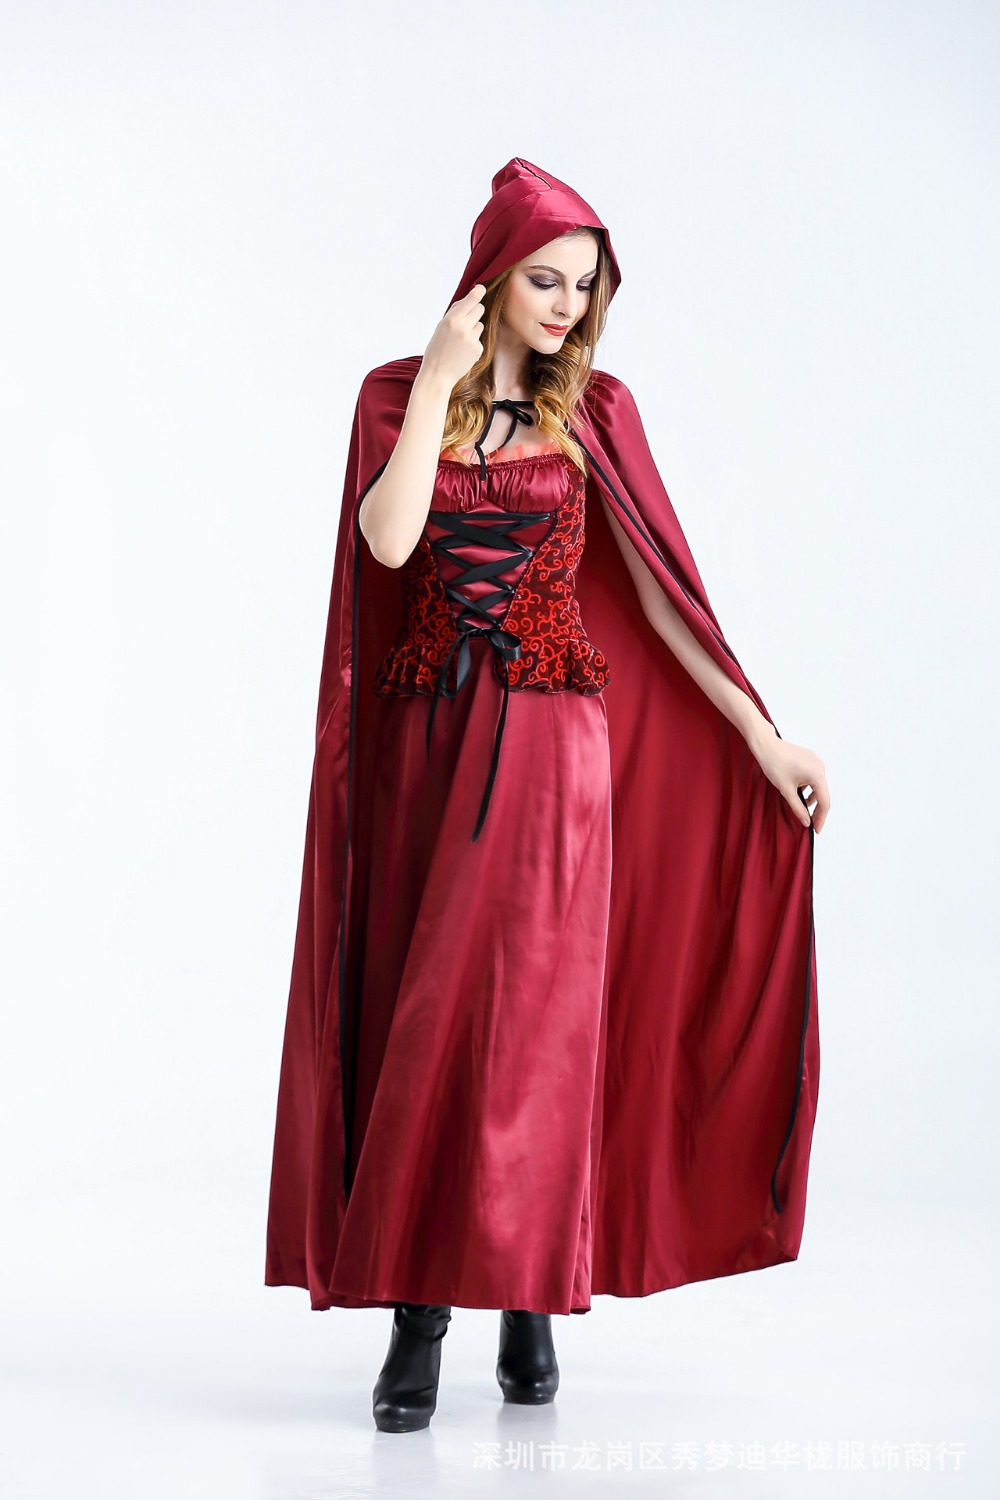 Little red riding hood Cosplay Long Skirt Gown Rode Evening Dress Medieval Women's Dreee Costume The vampire Long skirt Queen